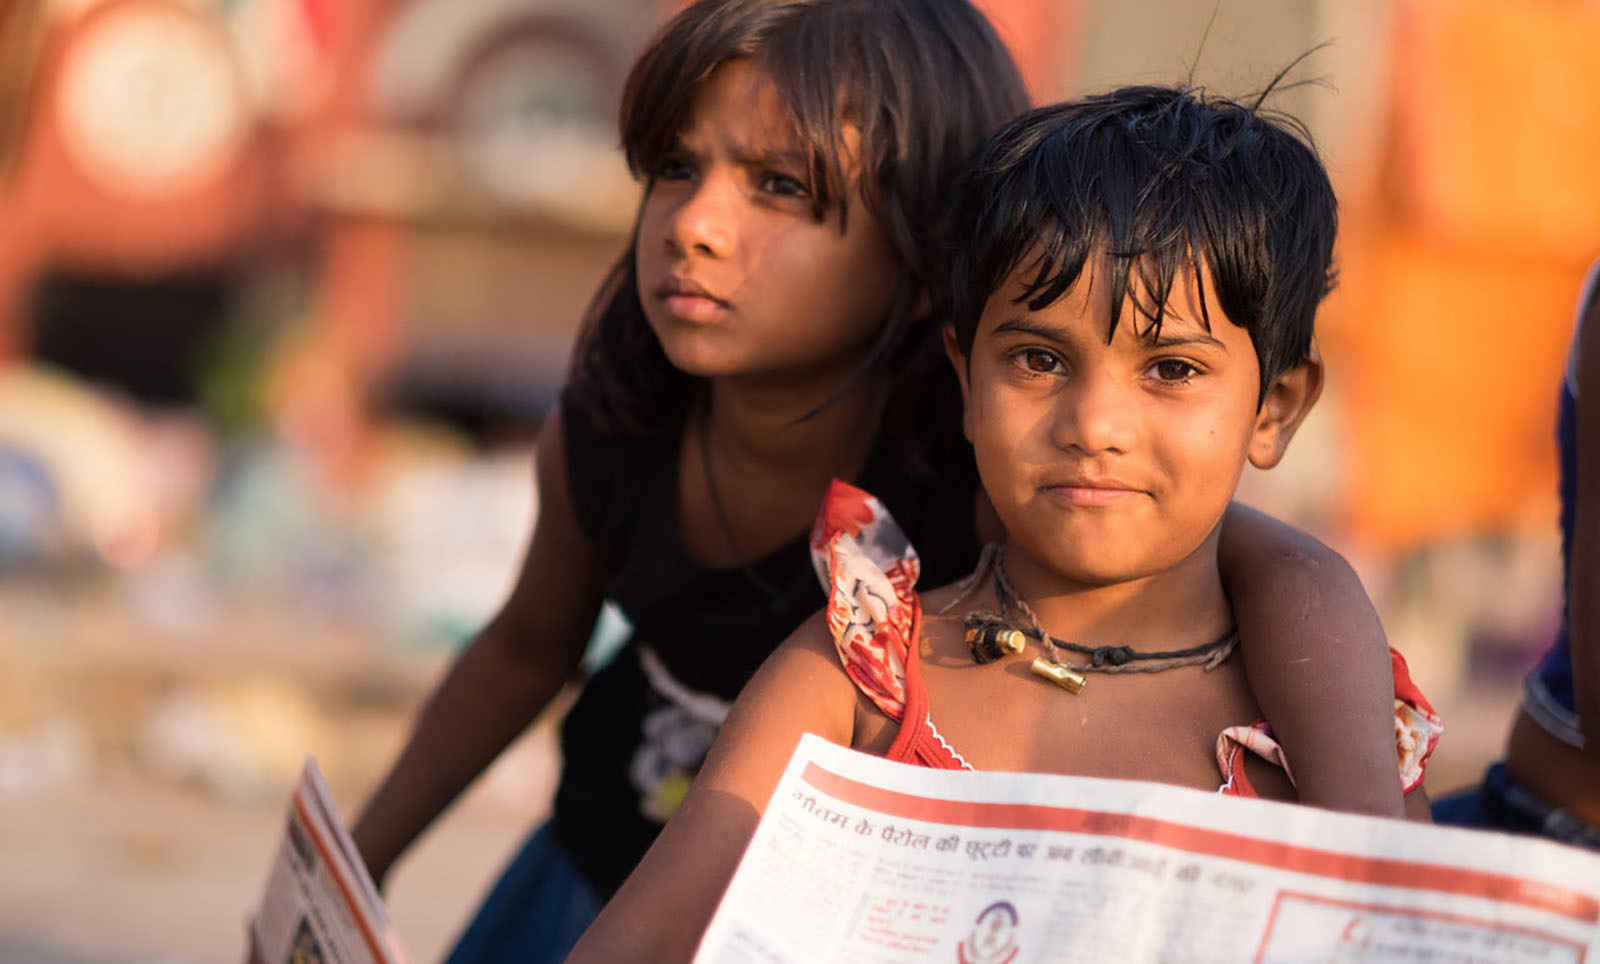 Give Today to Lift the Lives of Women and Children in Red Light Areas image